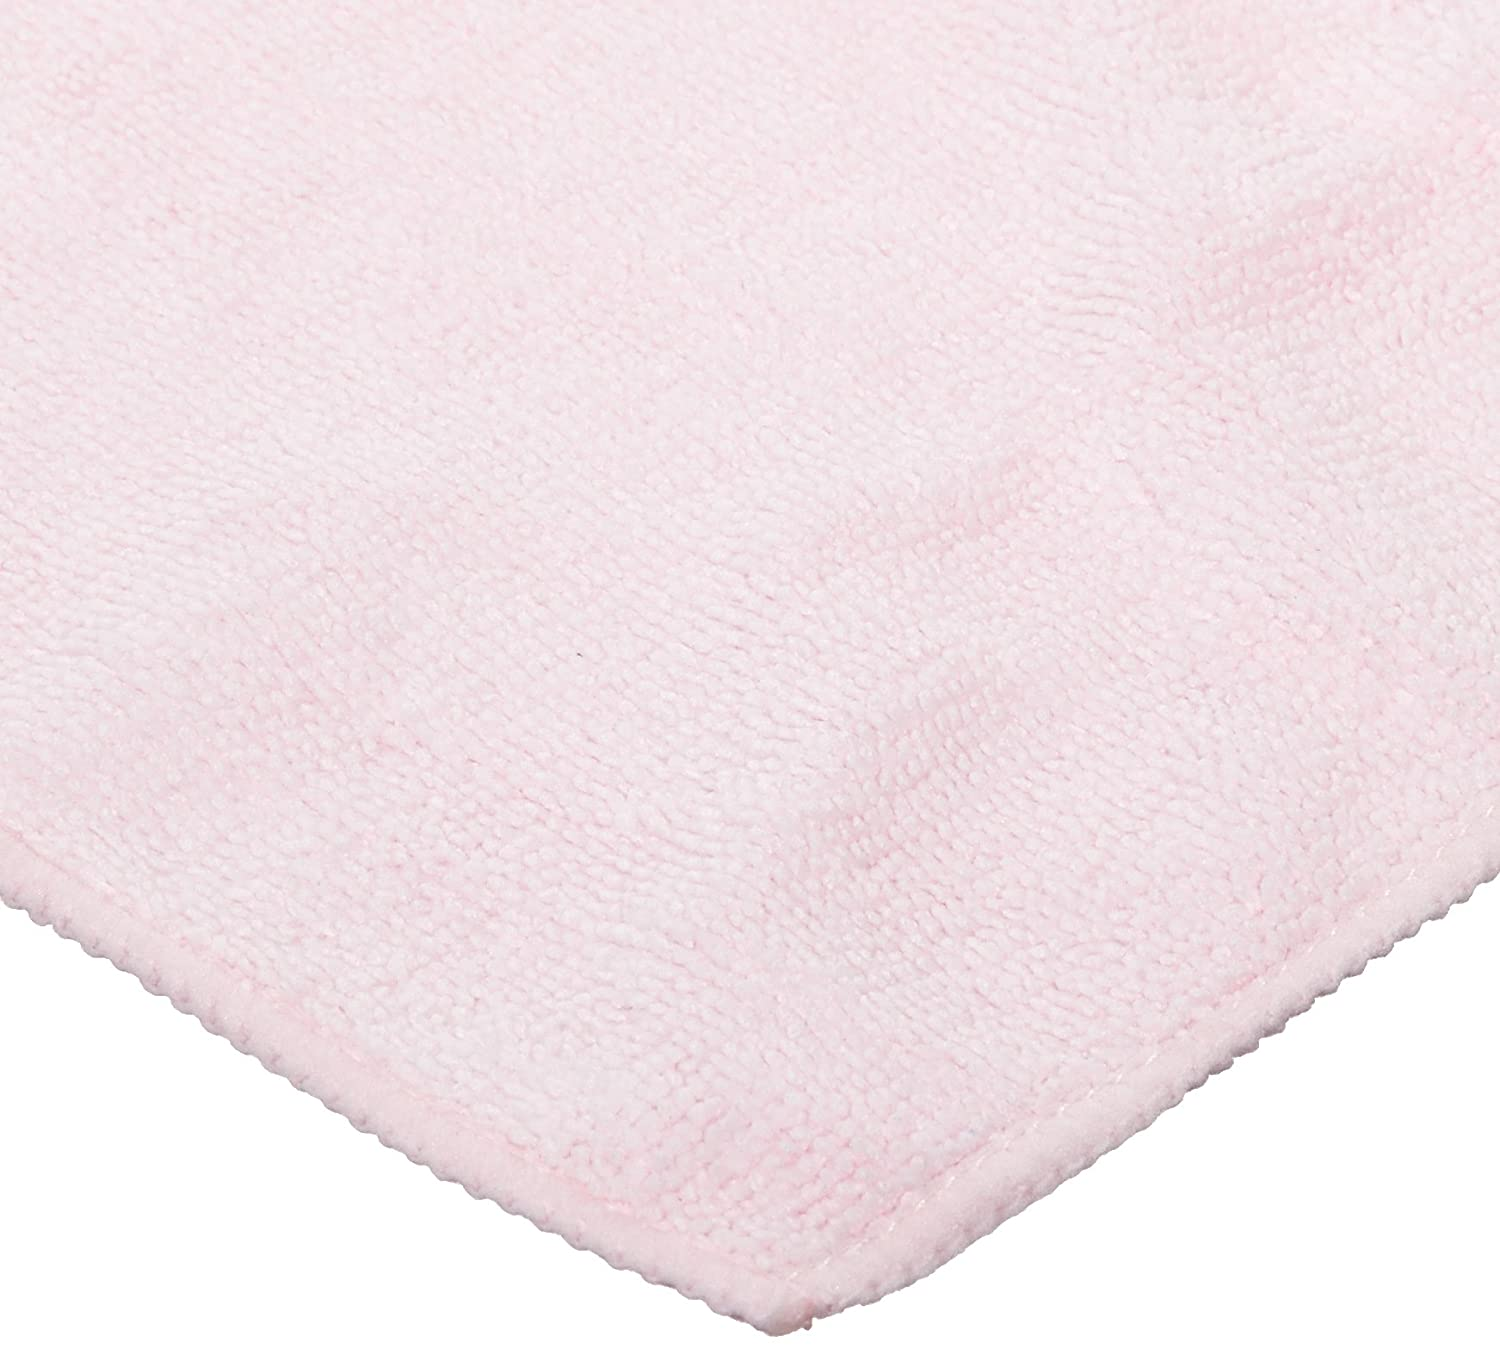 Pink Creative Products International CPI MCLOTH R General Purpose Microfiber Cloth Pack of 12 16-Inch x 16-Inch